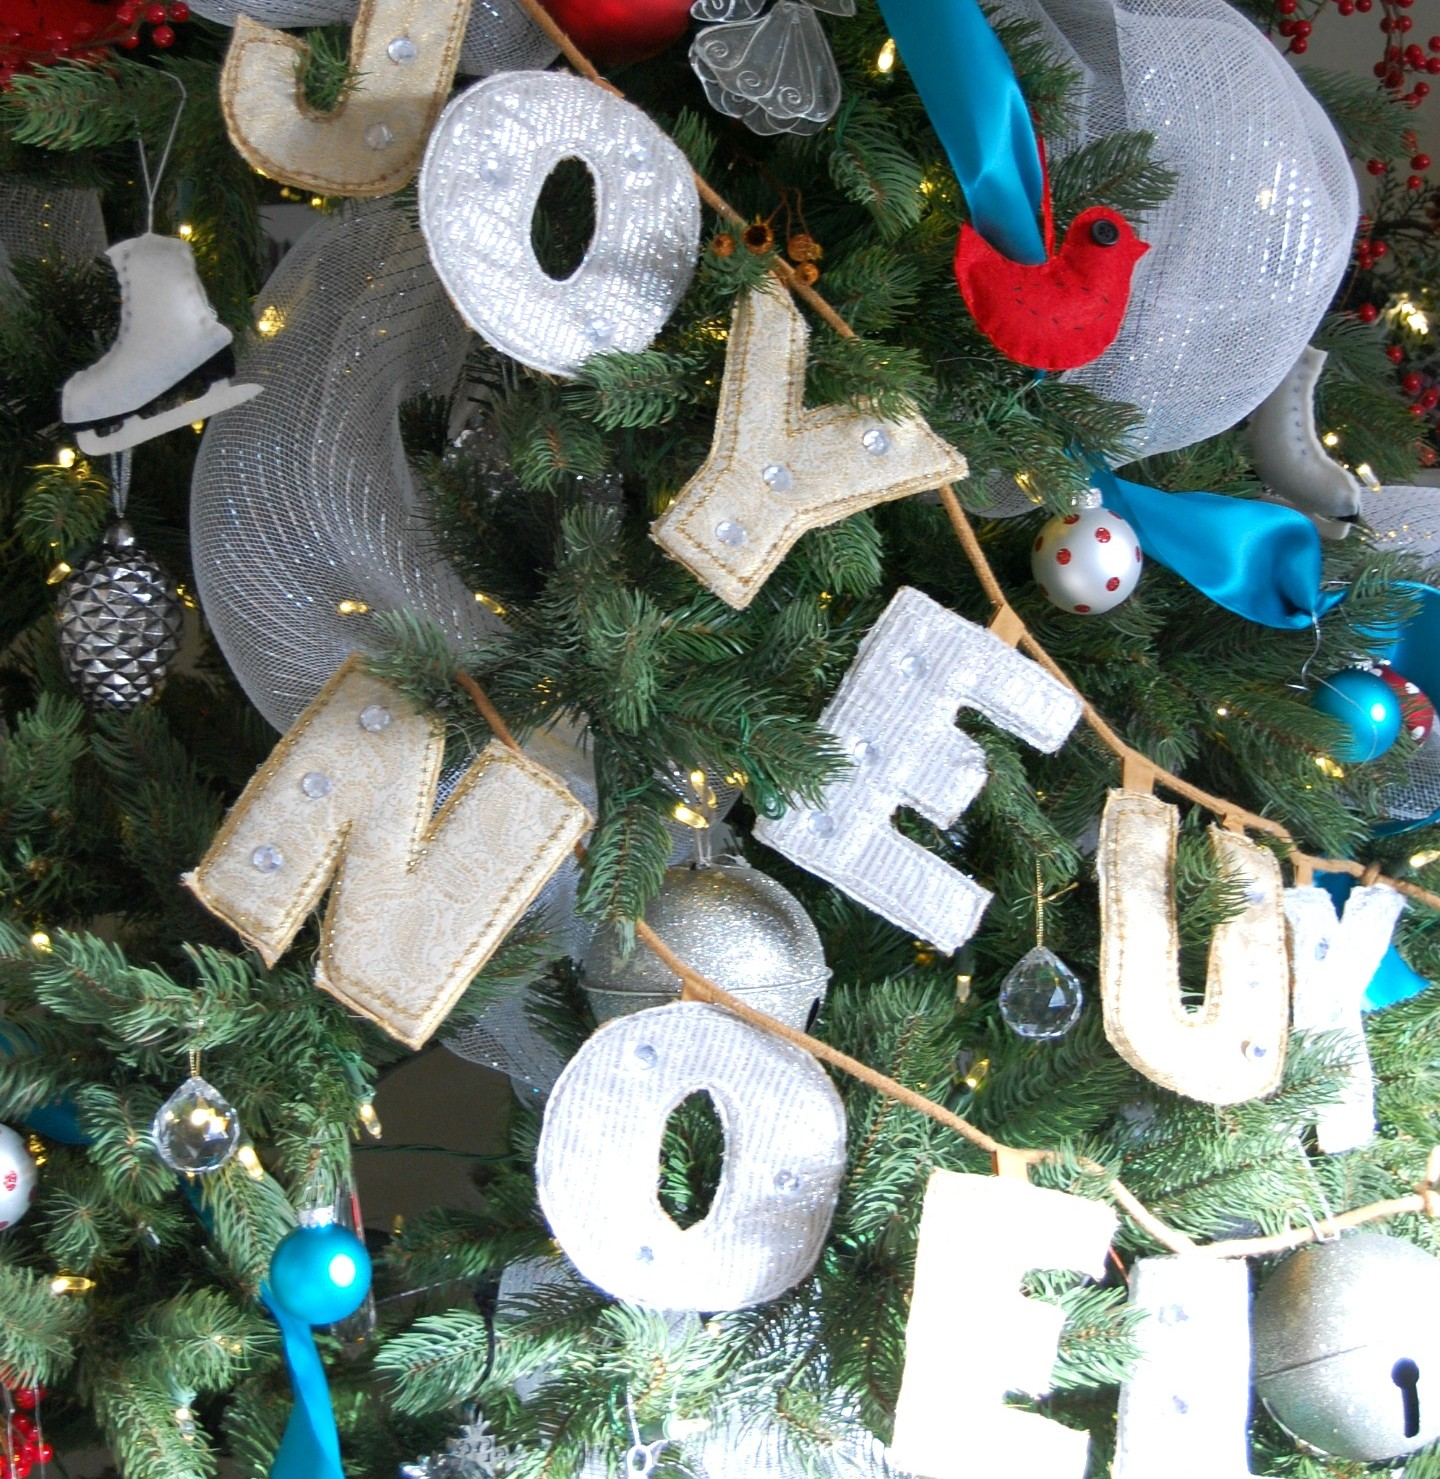 Christmas Tree Decorating Ideas: How to Change Your Color Scheme Affordably